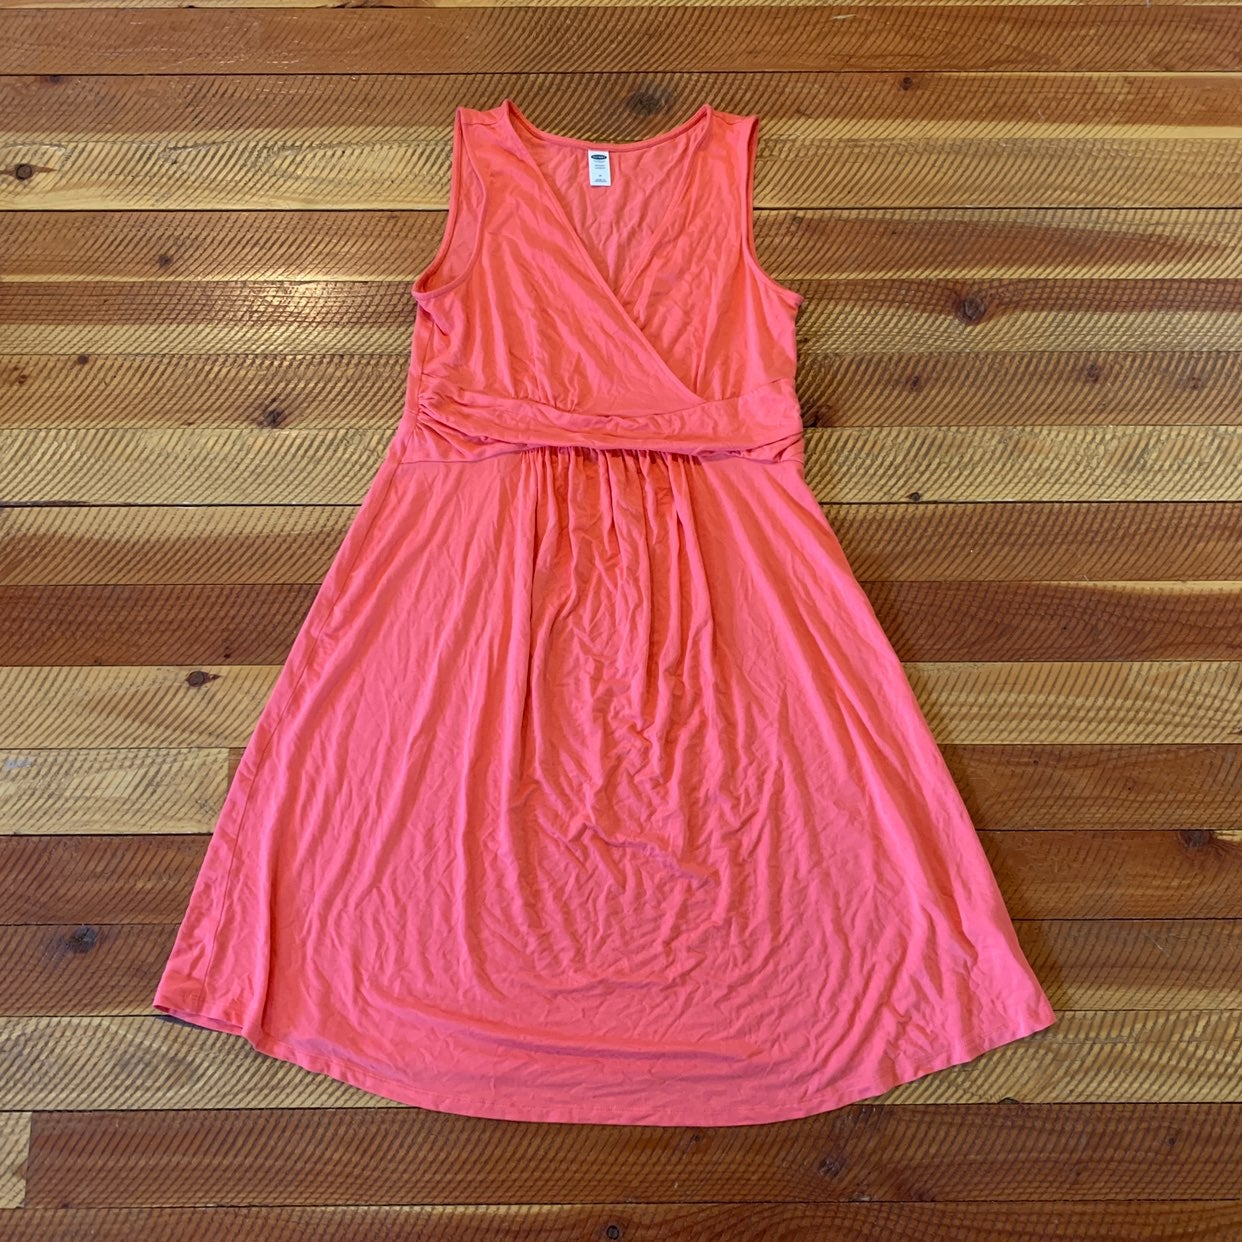 Old navy womens maternity Dress